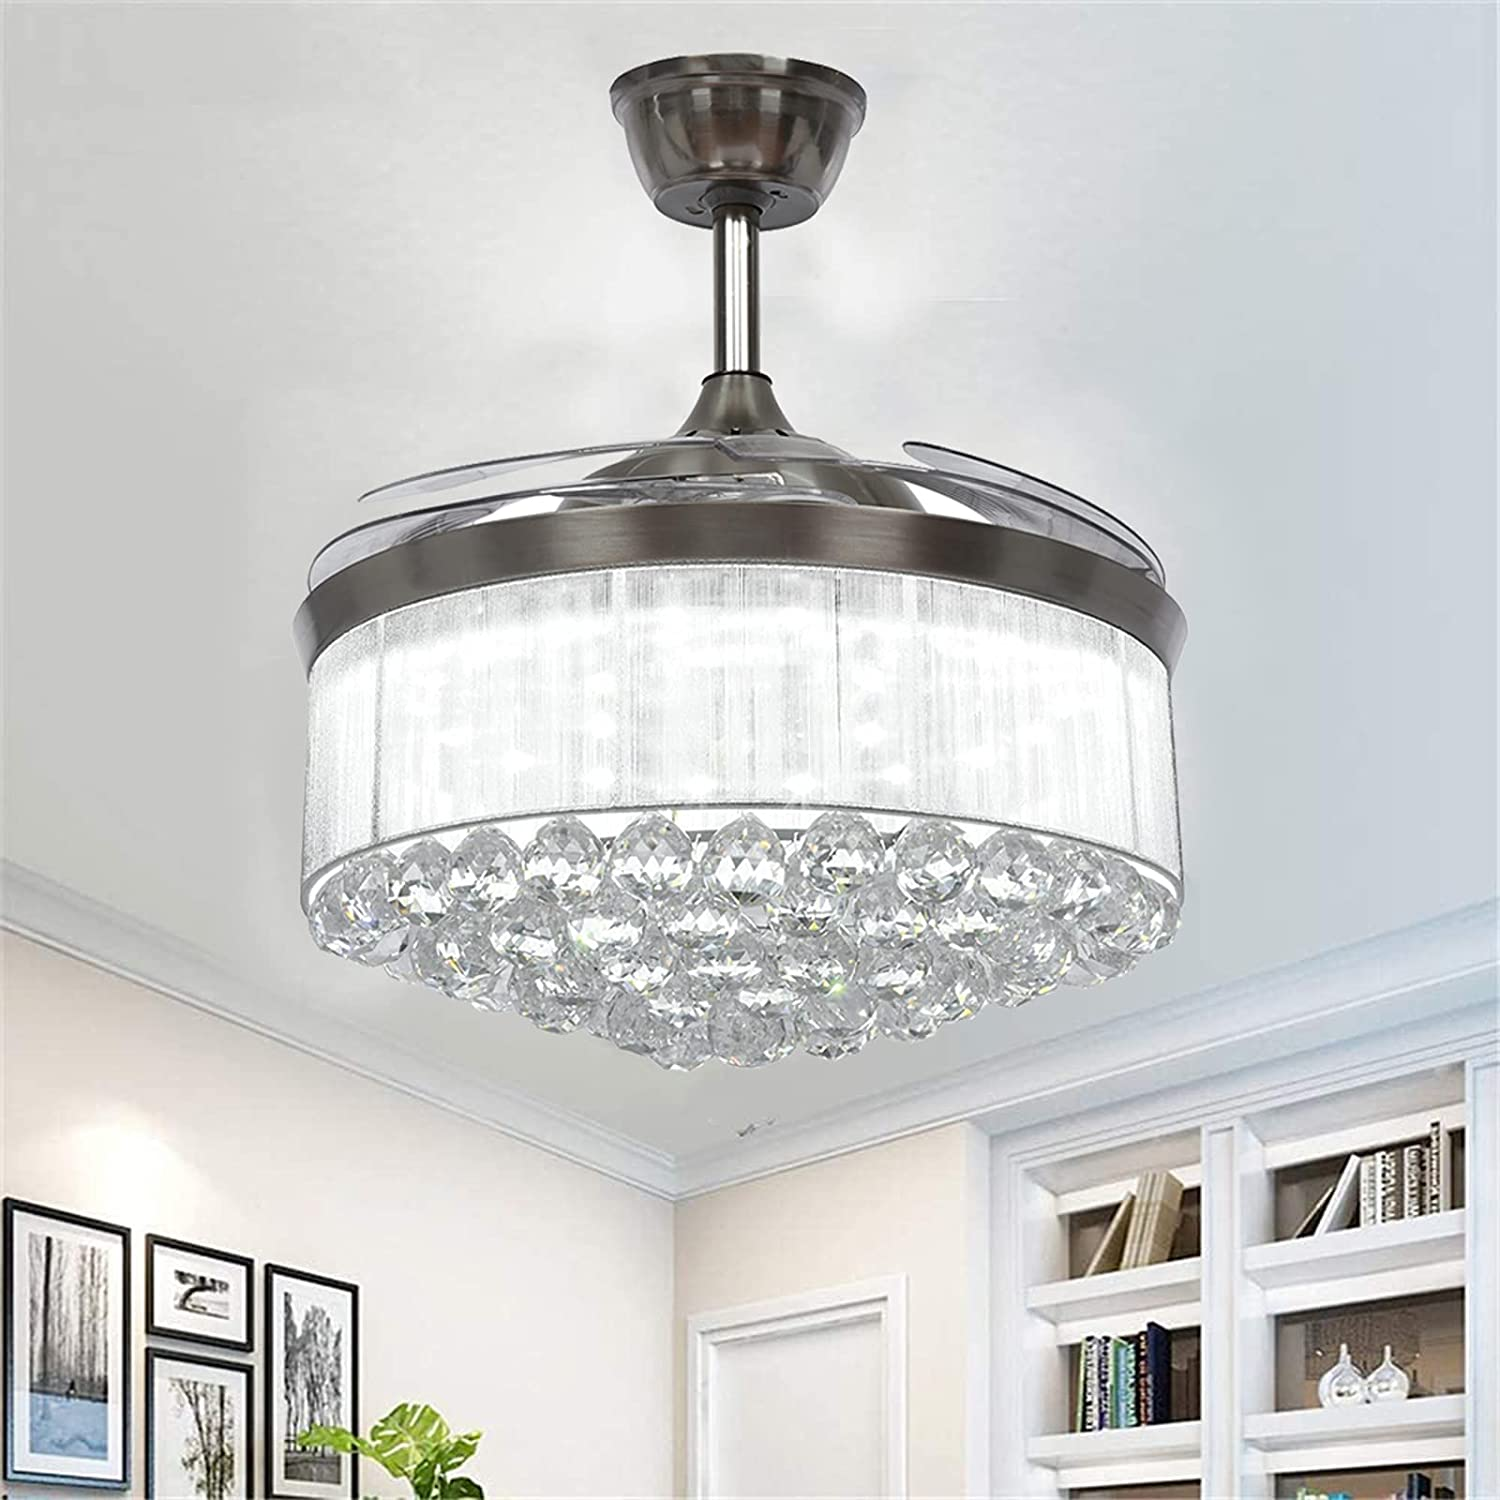 42 Inch Crystal Max 55% OFF Ranking TOP3 Ceiling Fan Chandelier Retractable